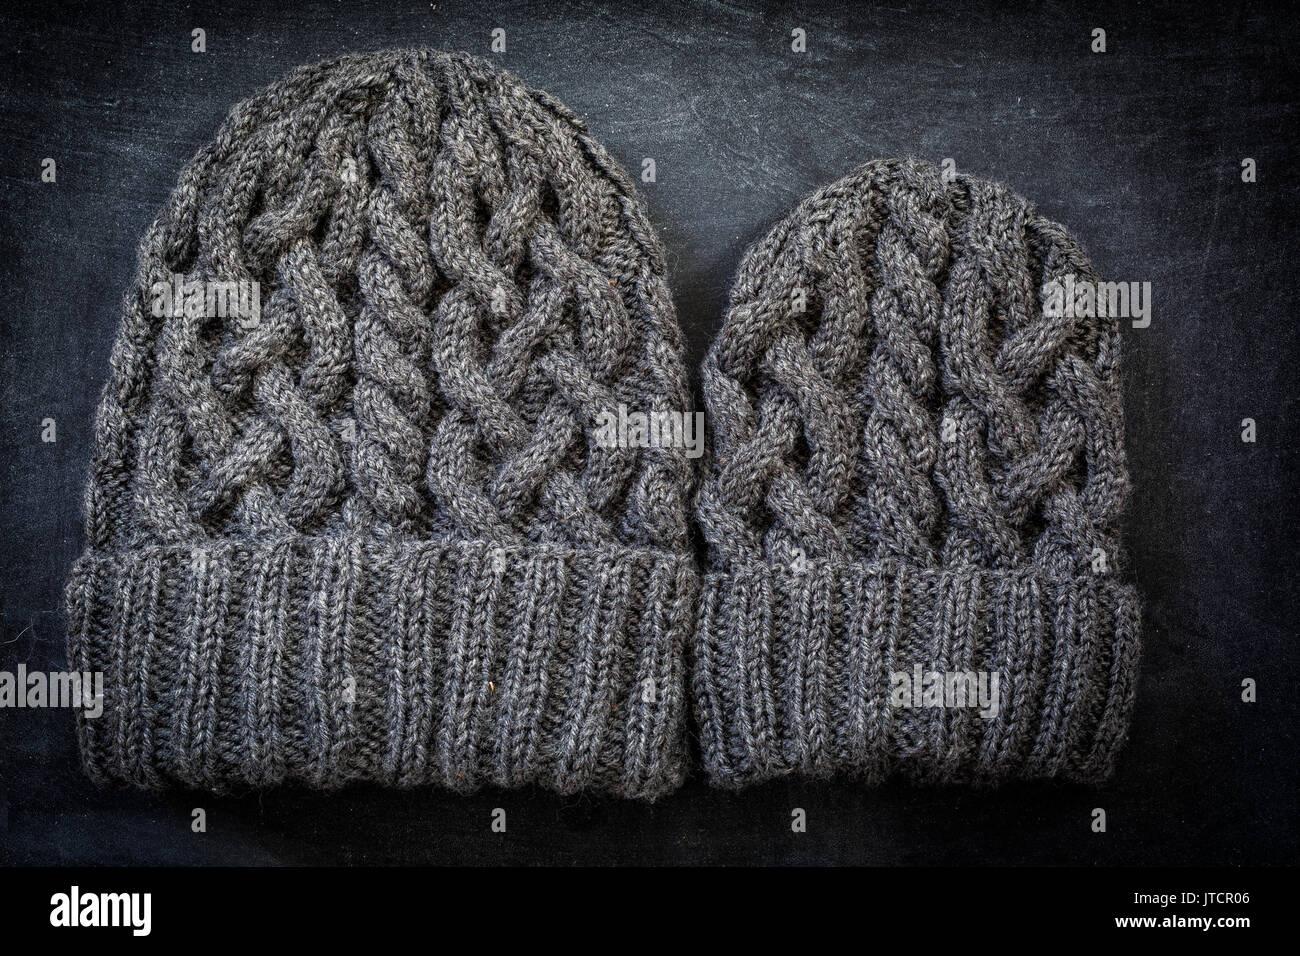 Two sizes of hand knit woolen hats with cables. One for a child, the other for an adult. - Stock Image